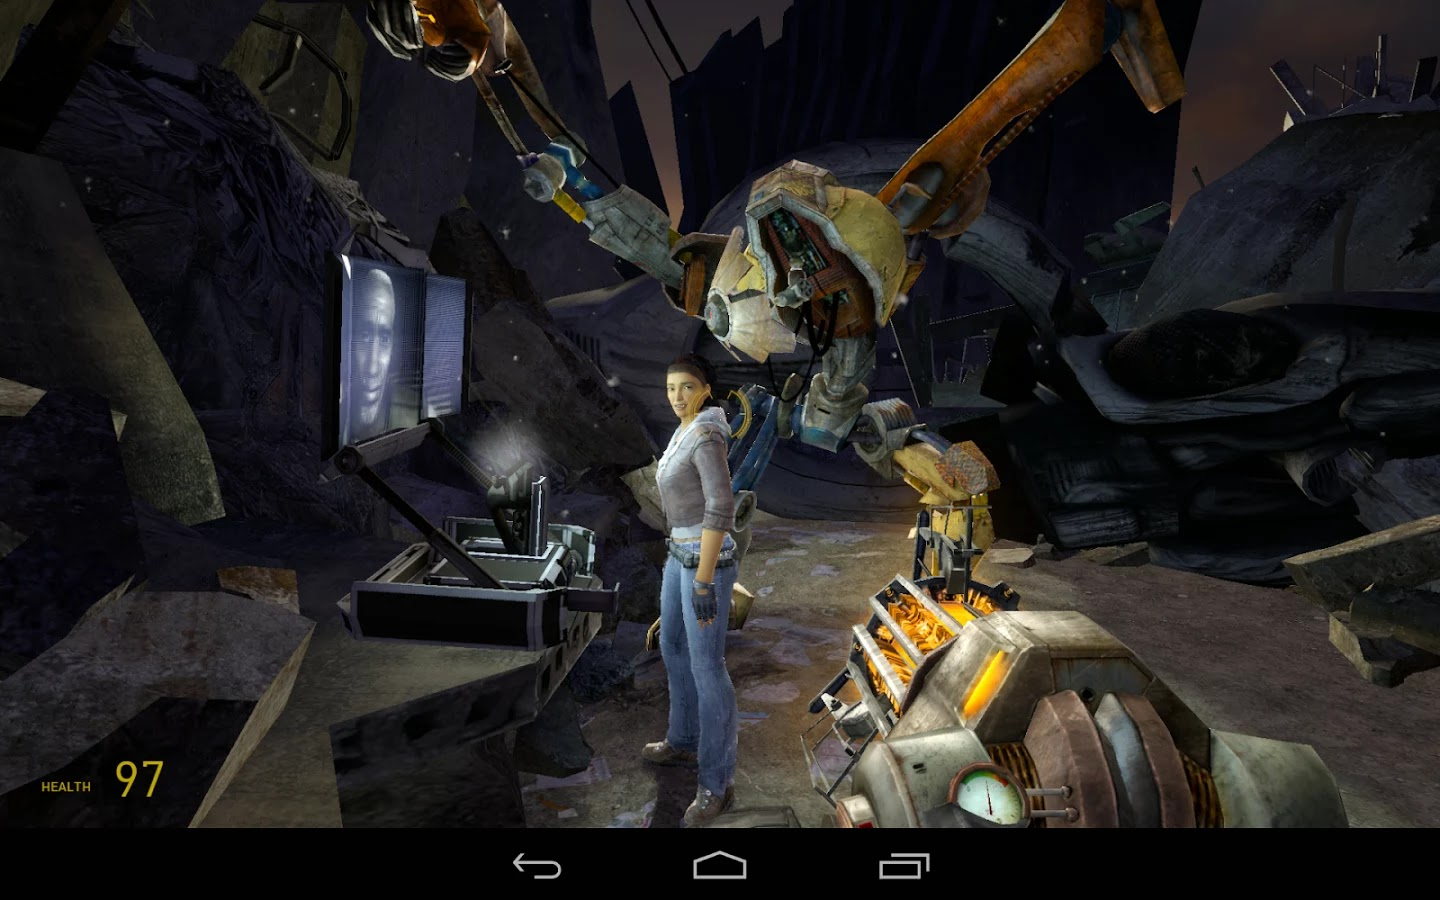 Half life data download android